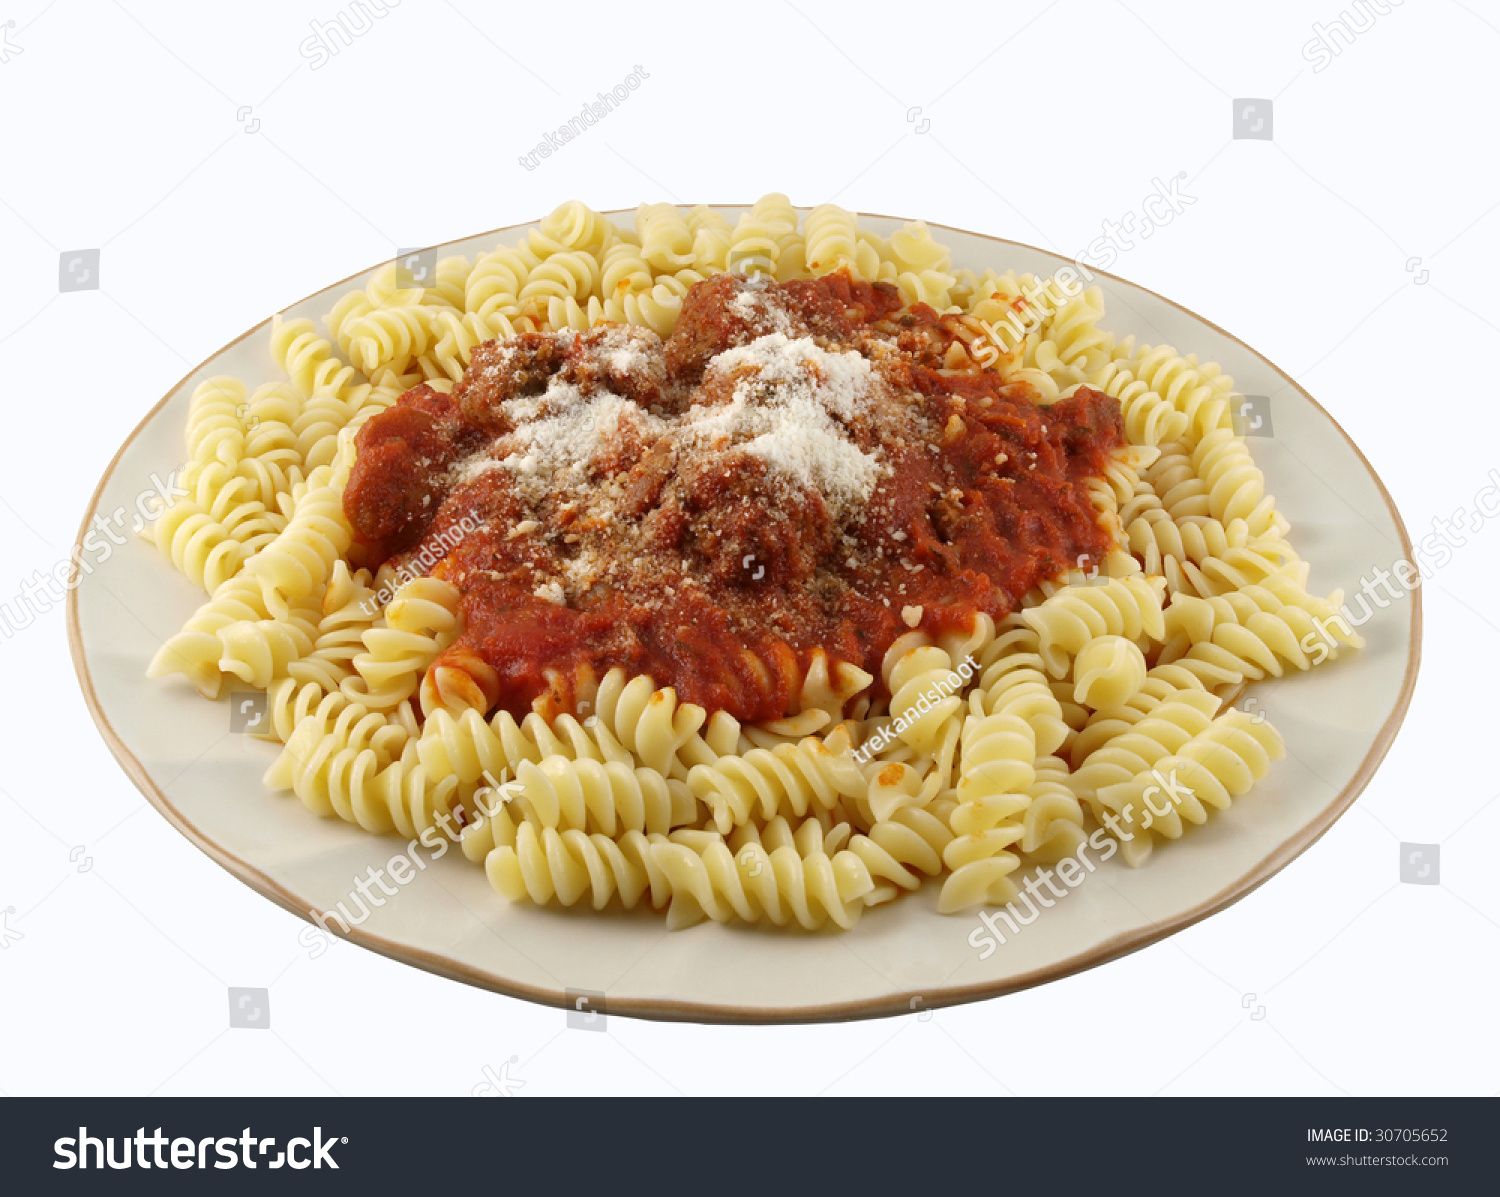 A Plate Of Rotini Pasta With Tomato Sauce And Meatball. Stock